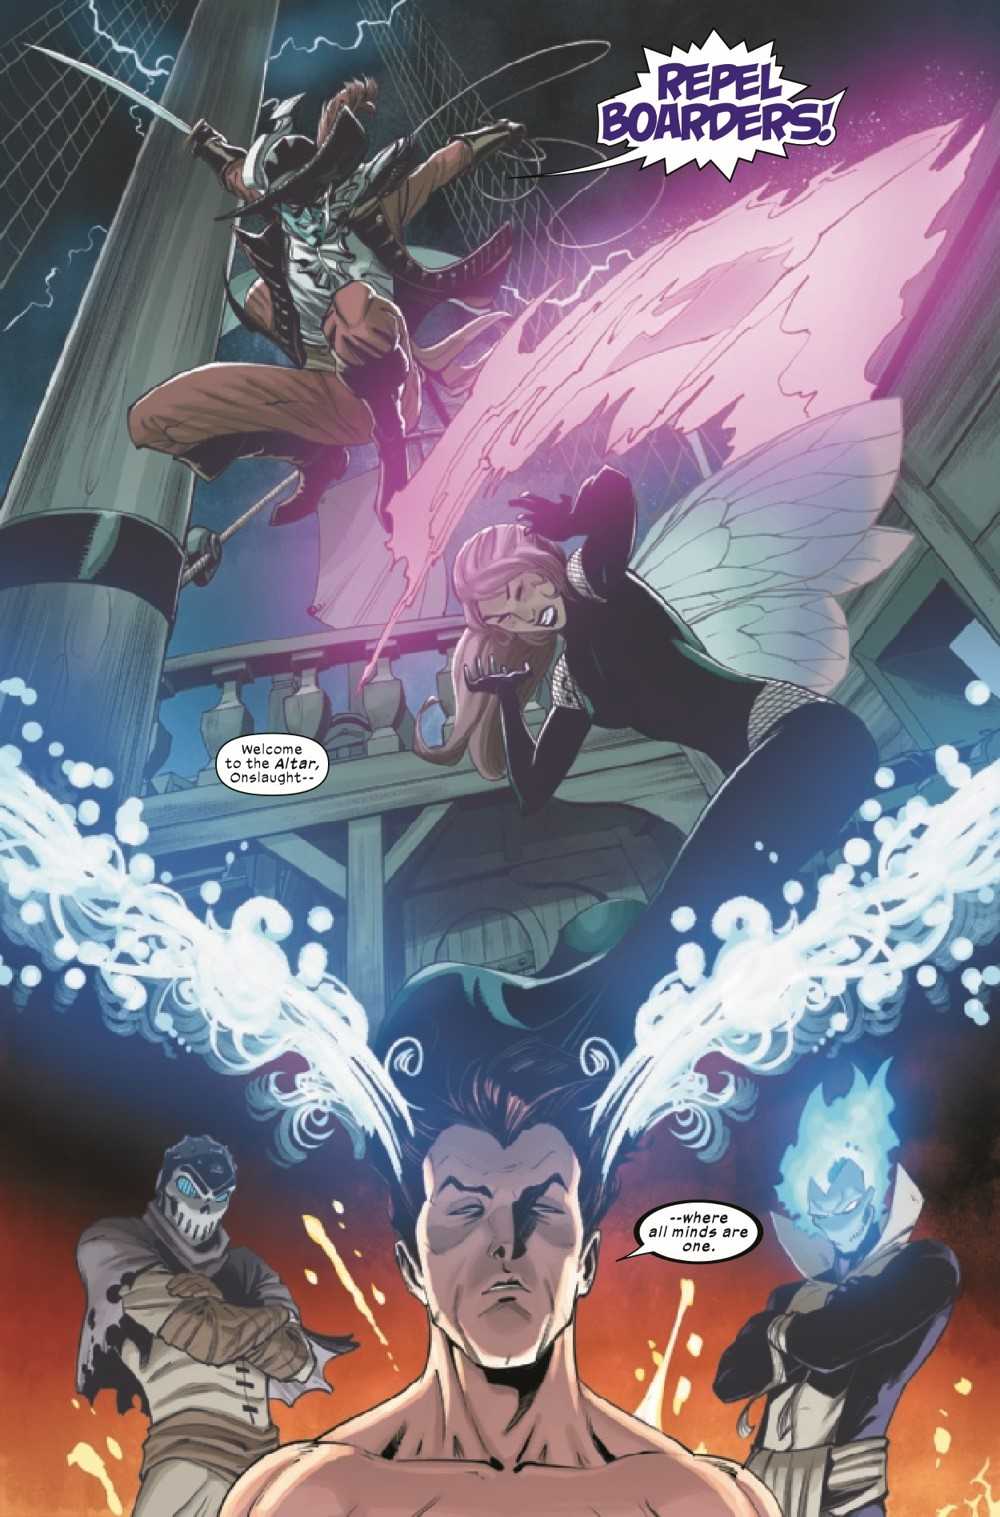 XMNONREVEL2021001_Preview-5 ComicList Previews: X-MEN THE ONSLAUGHT REVELATION #1